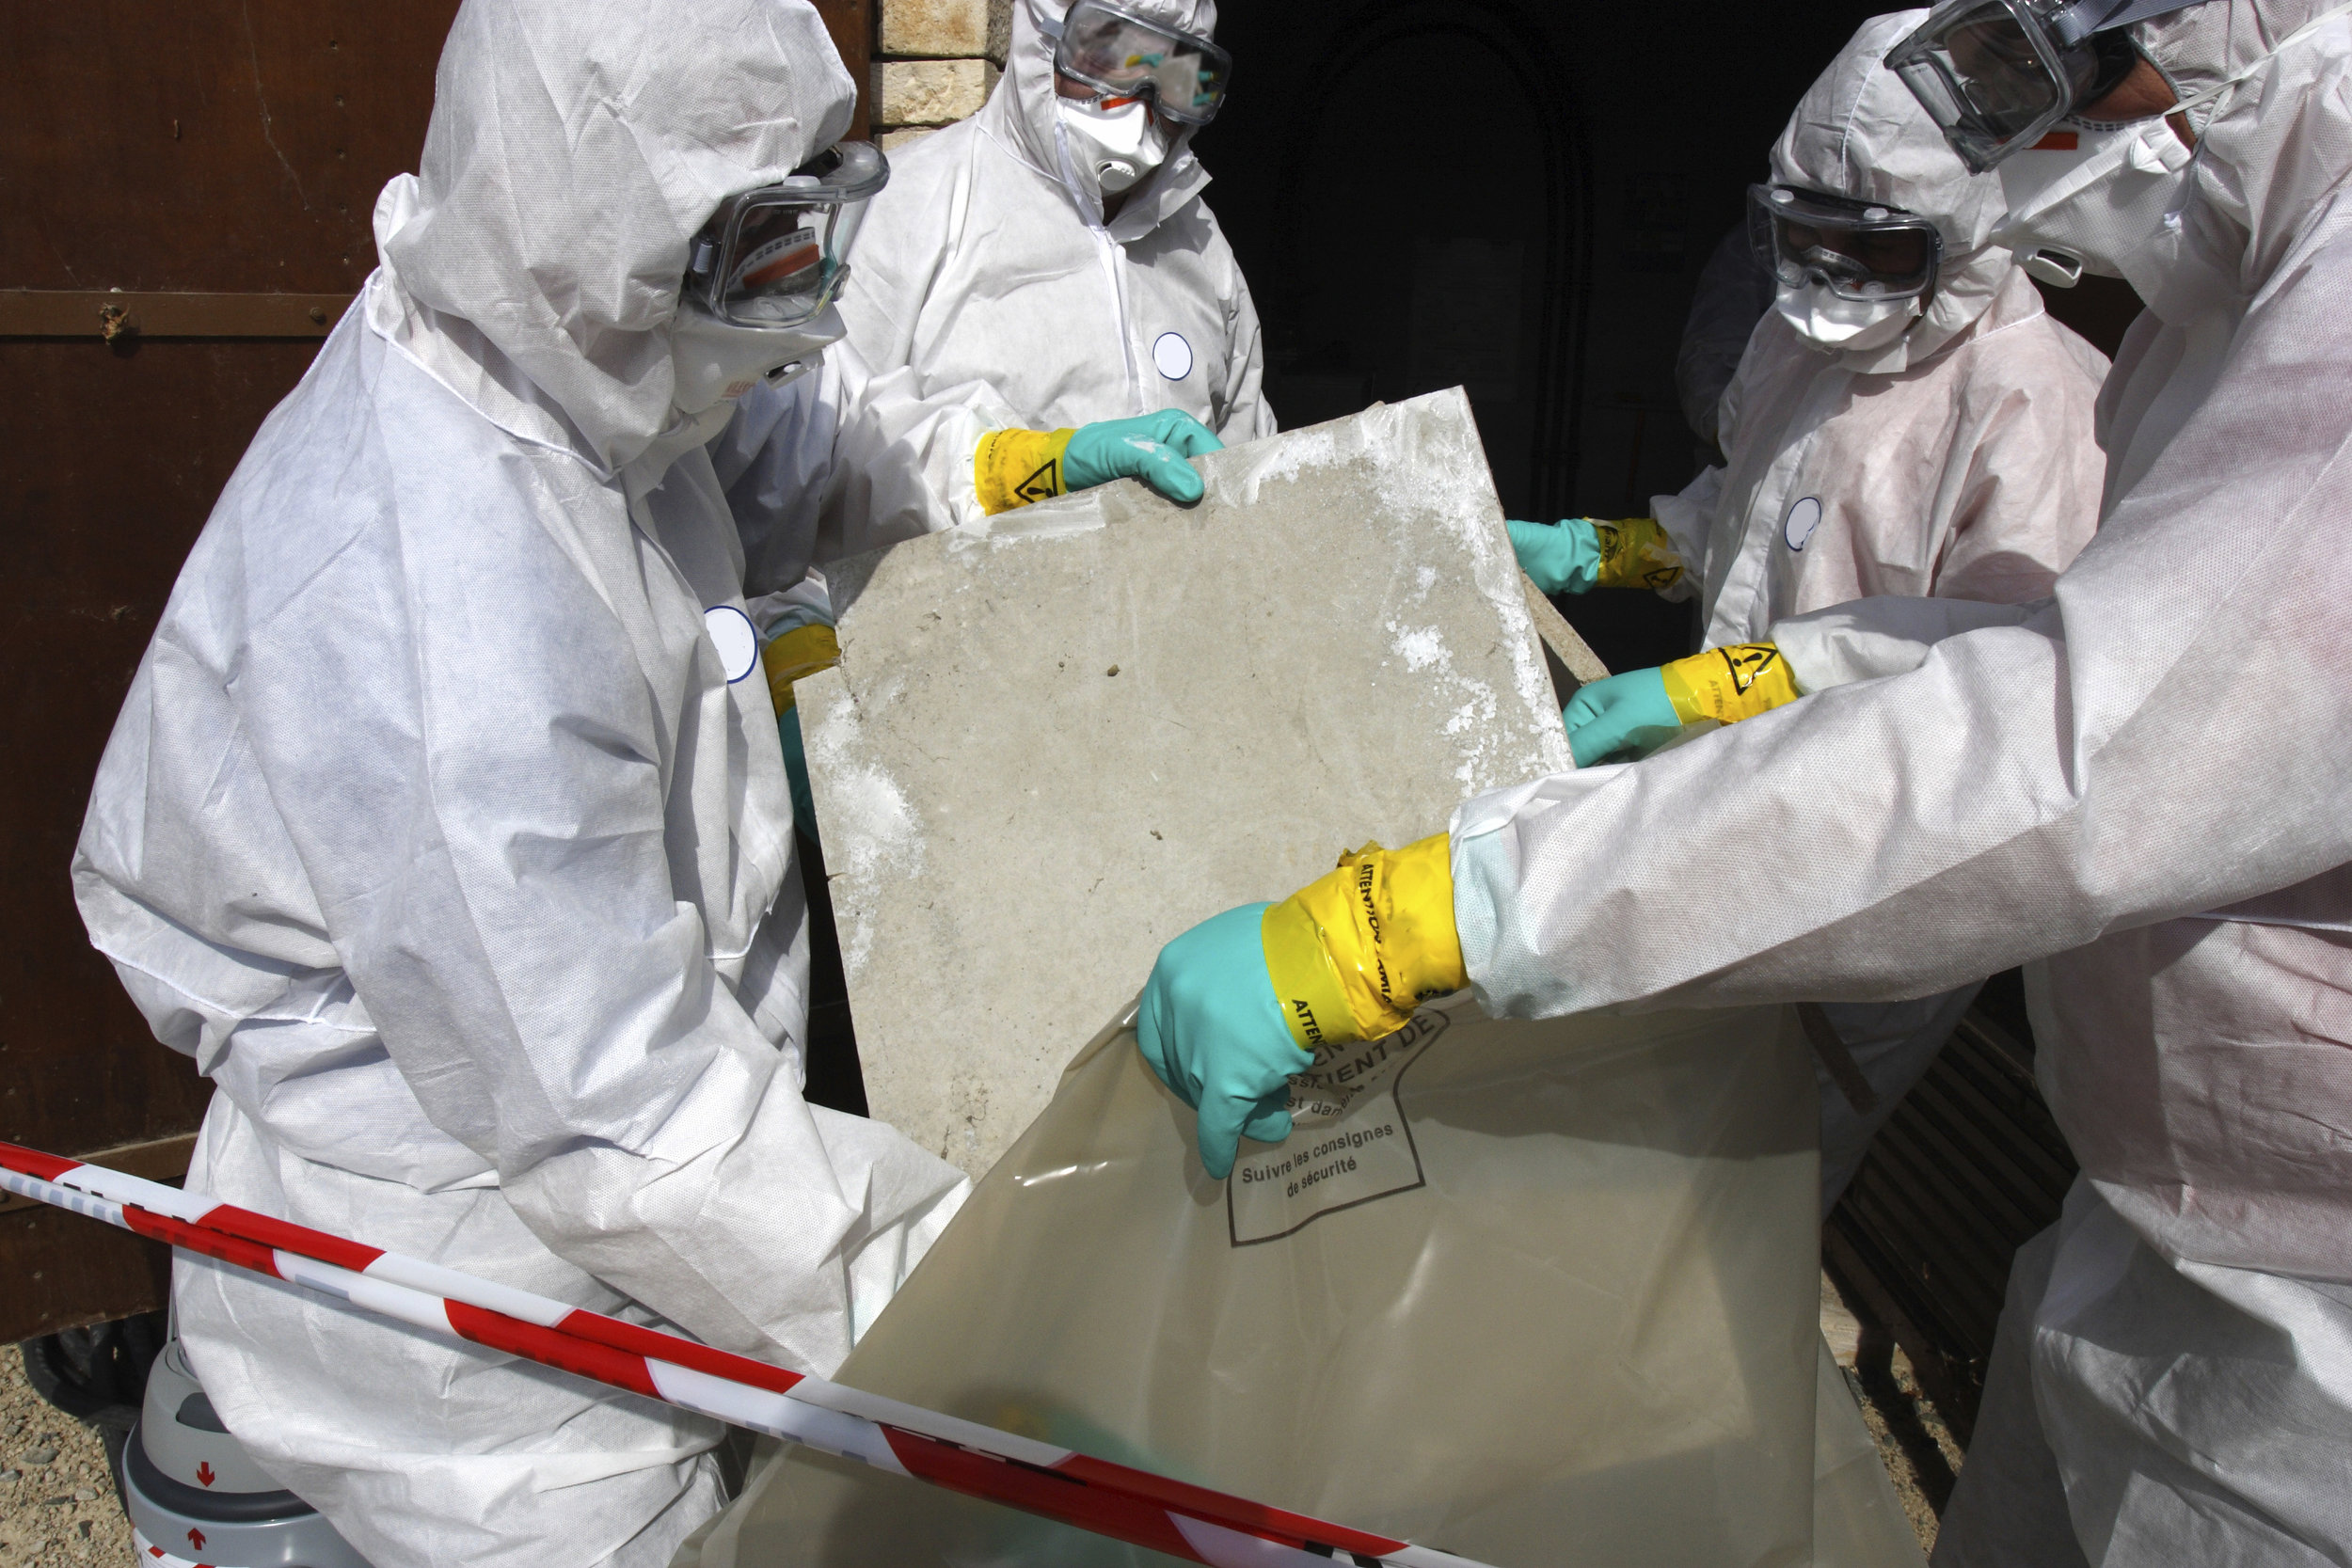 When disposing of asbestos it is important to wear the proper protective gear to prevent inhalation of fibres.